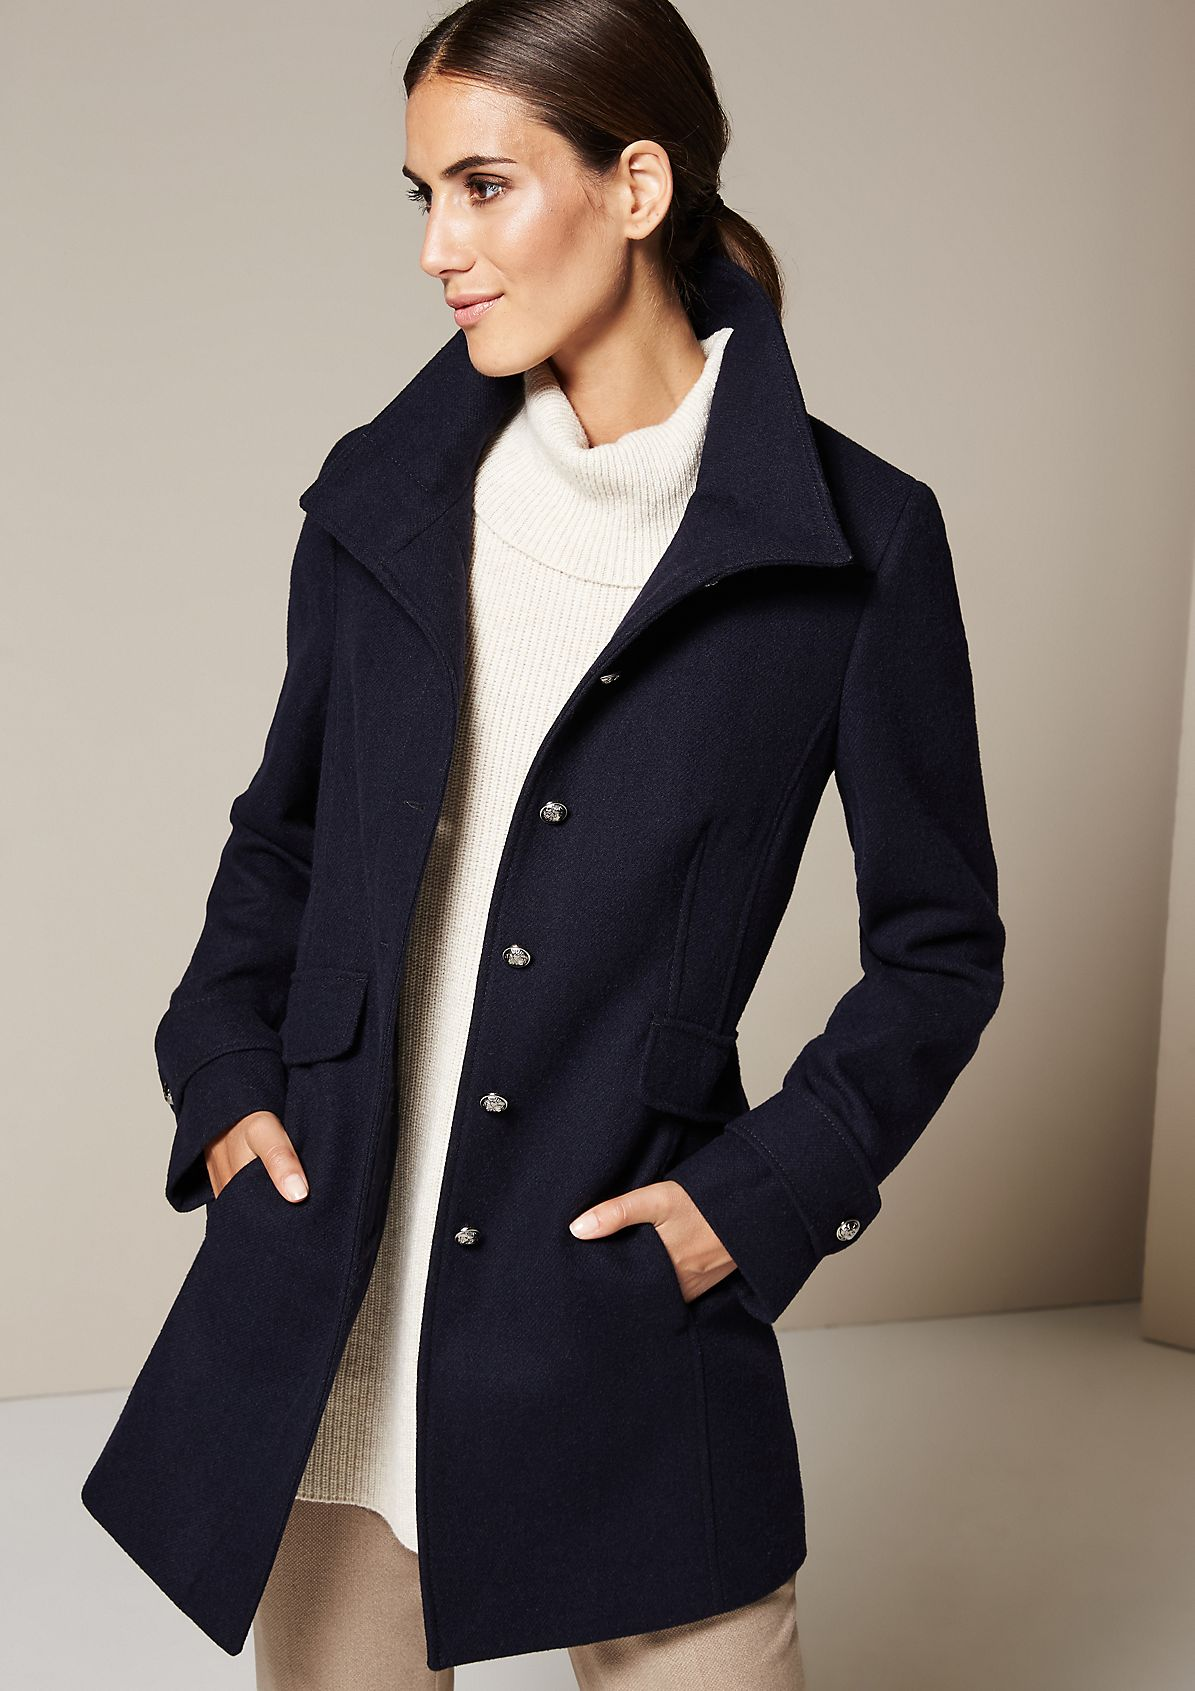 Elegant short coat with great attention to detail from s.Oliver